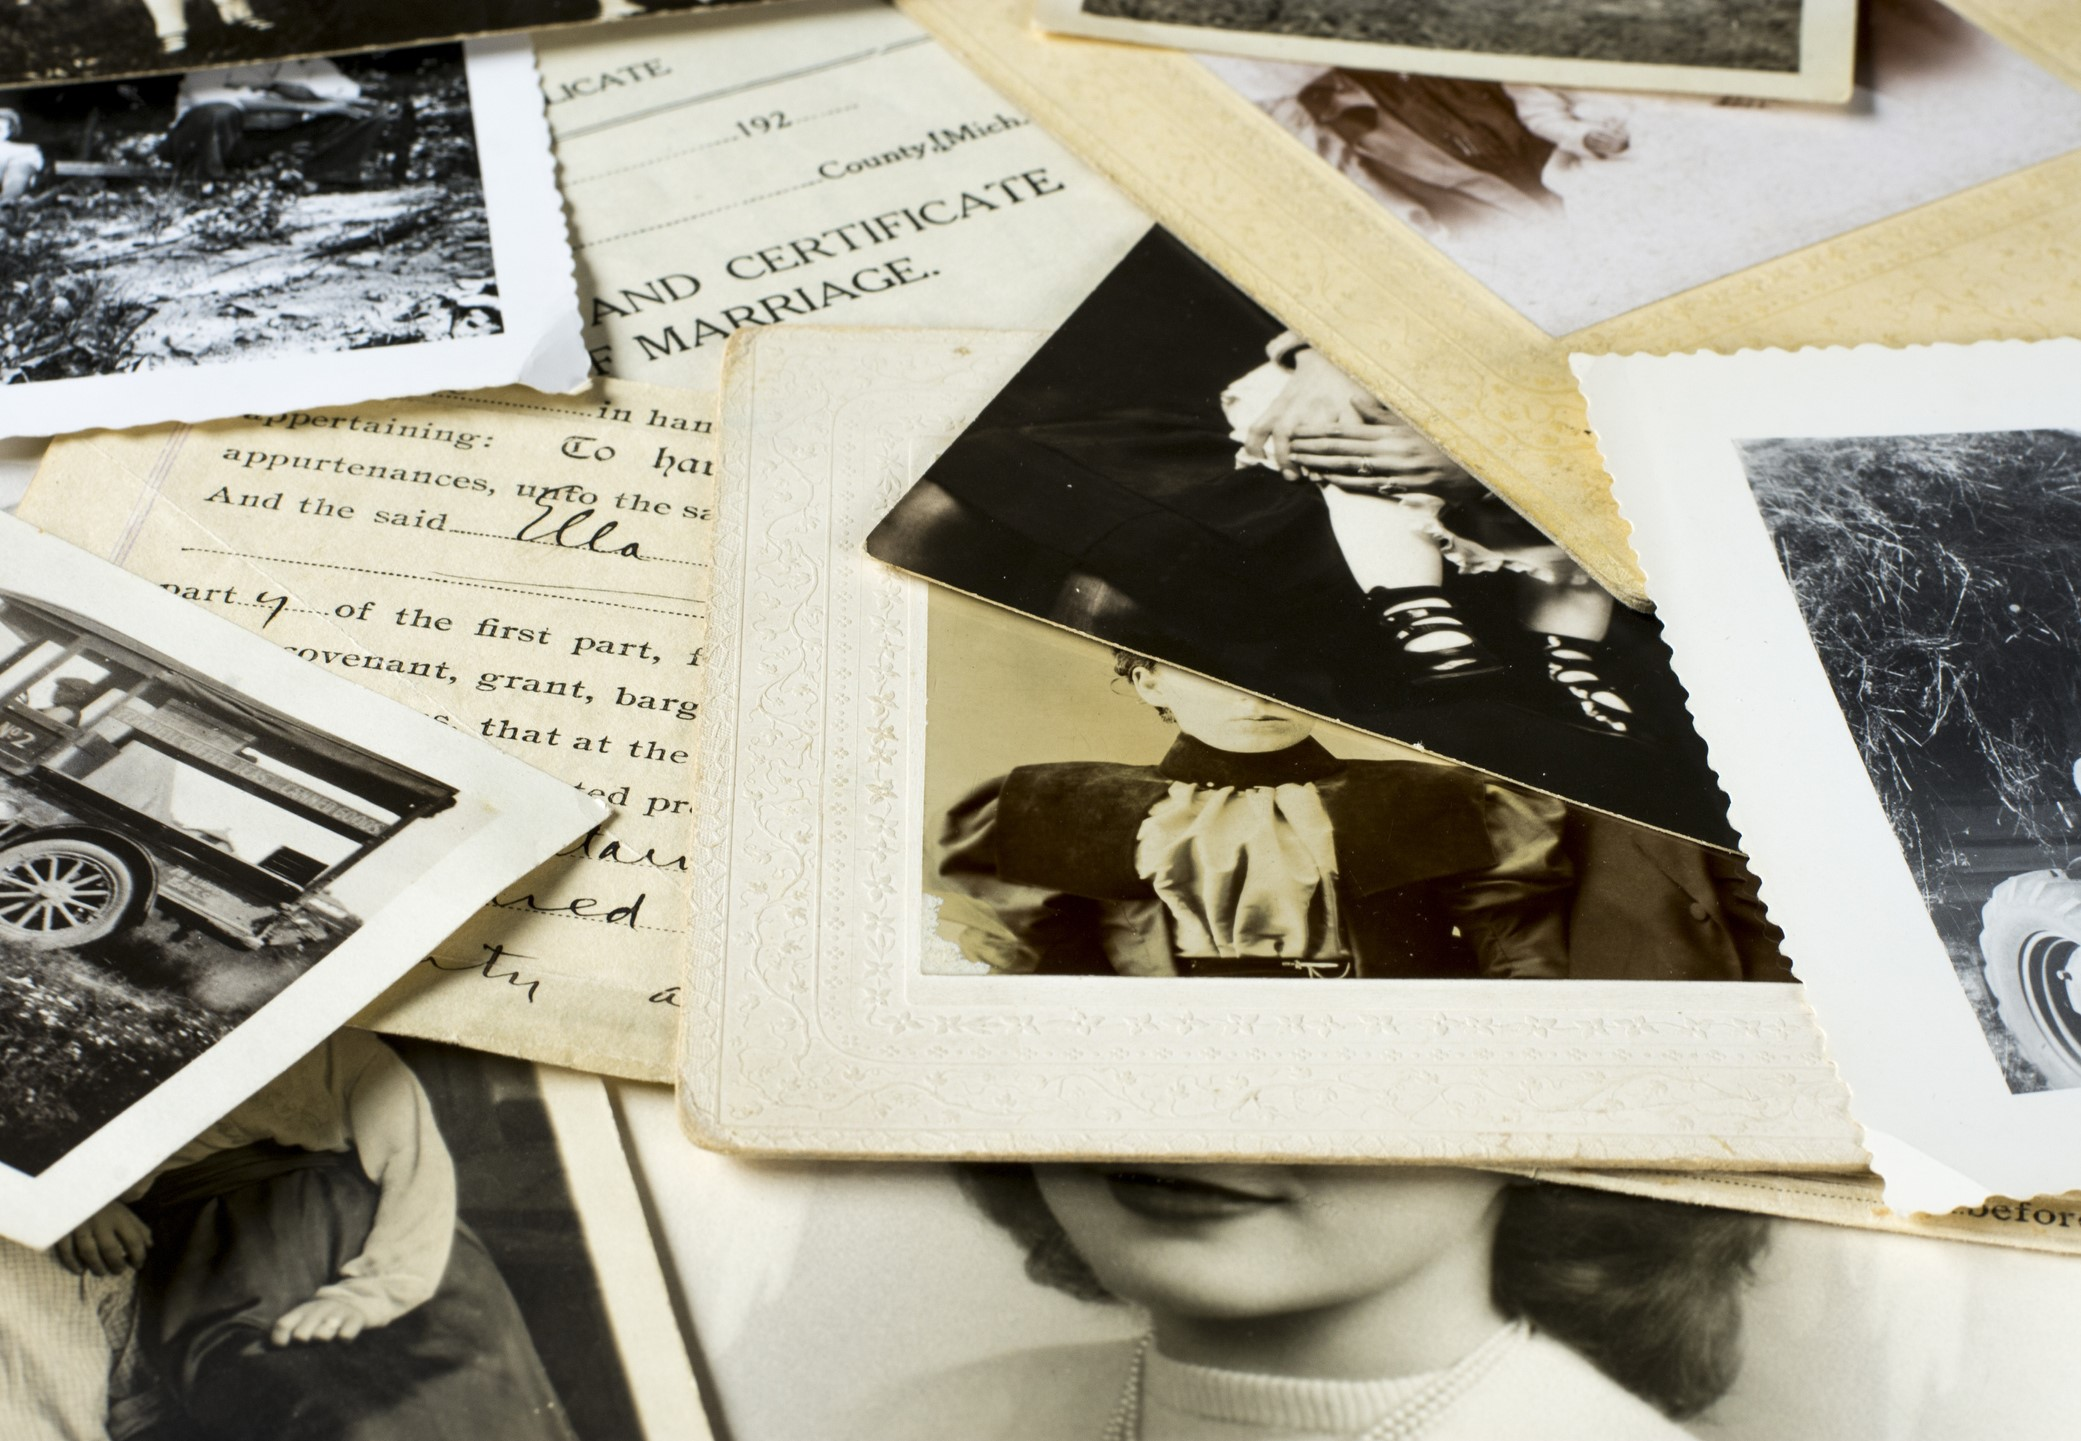 GettyImages - Ancestry